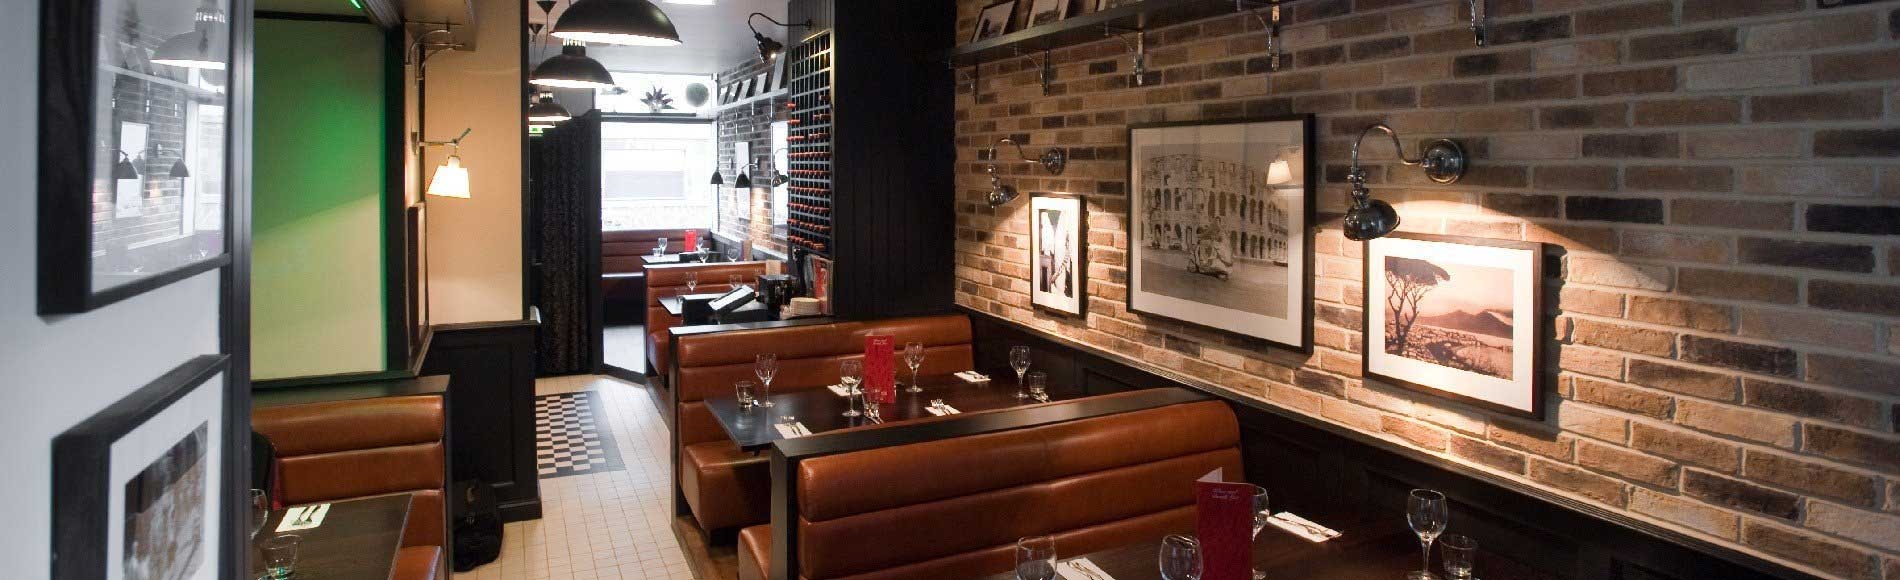 Vittoria Group Italian Restaurants Interior